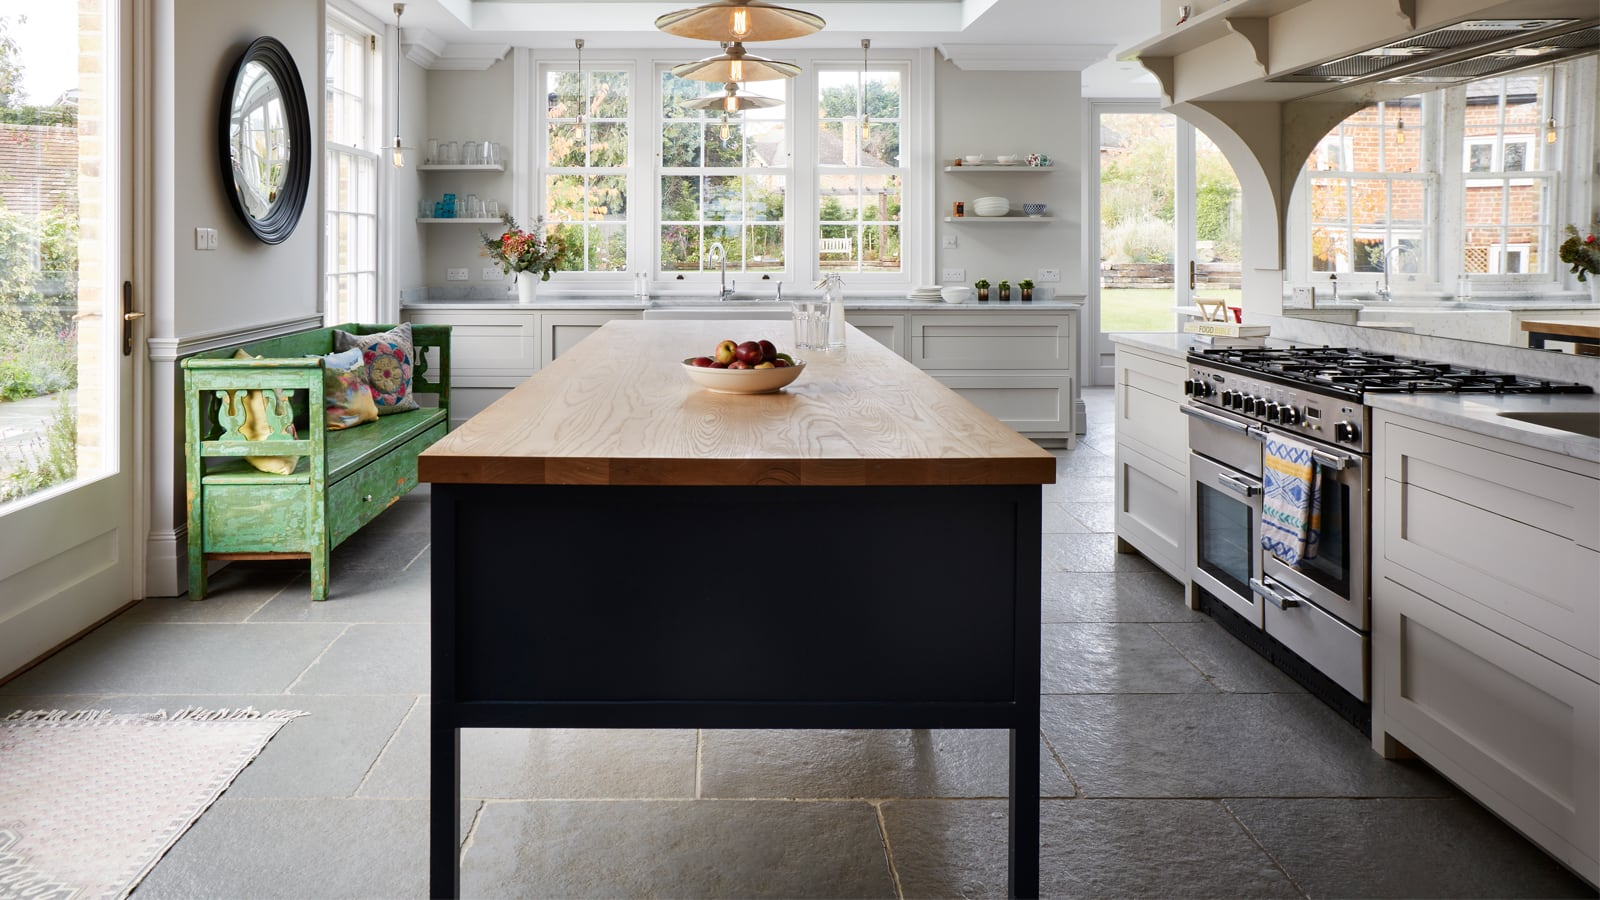 Introducing Westbury stone floors